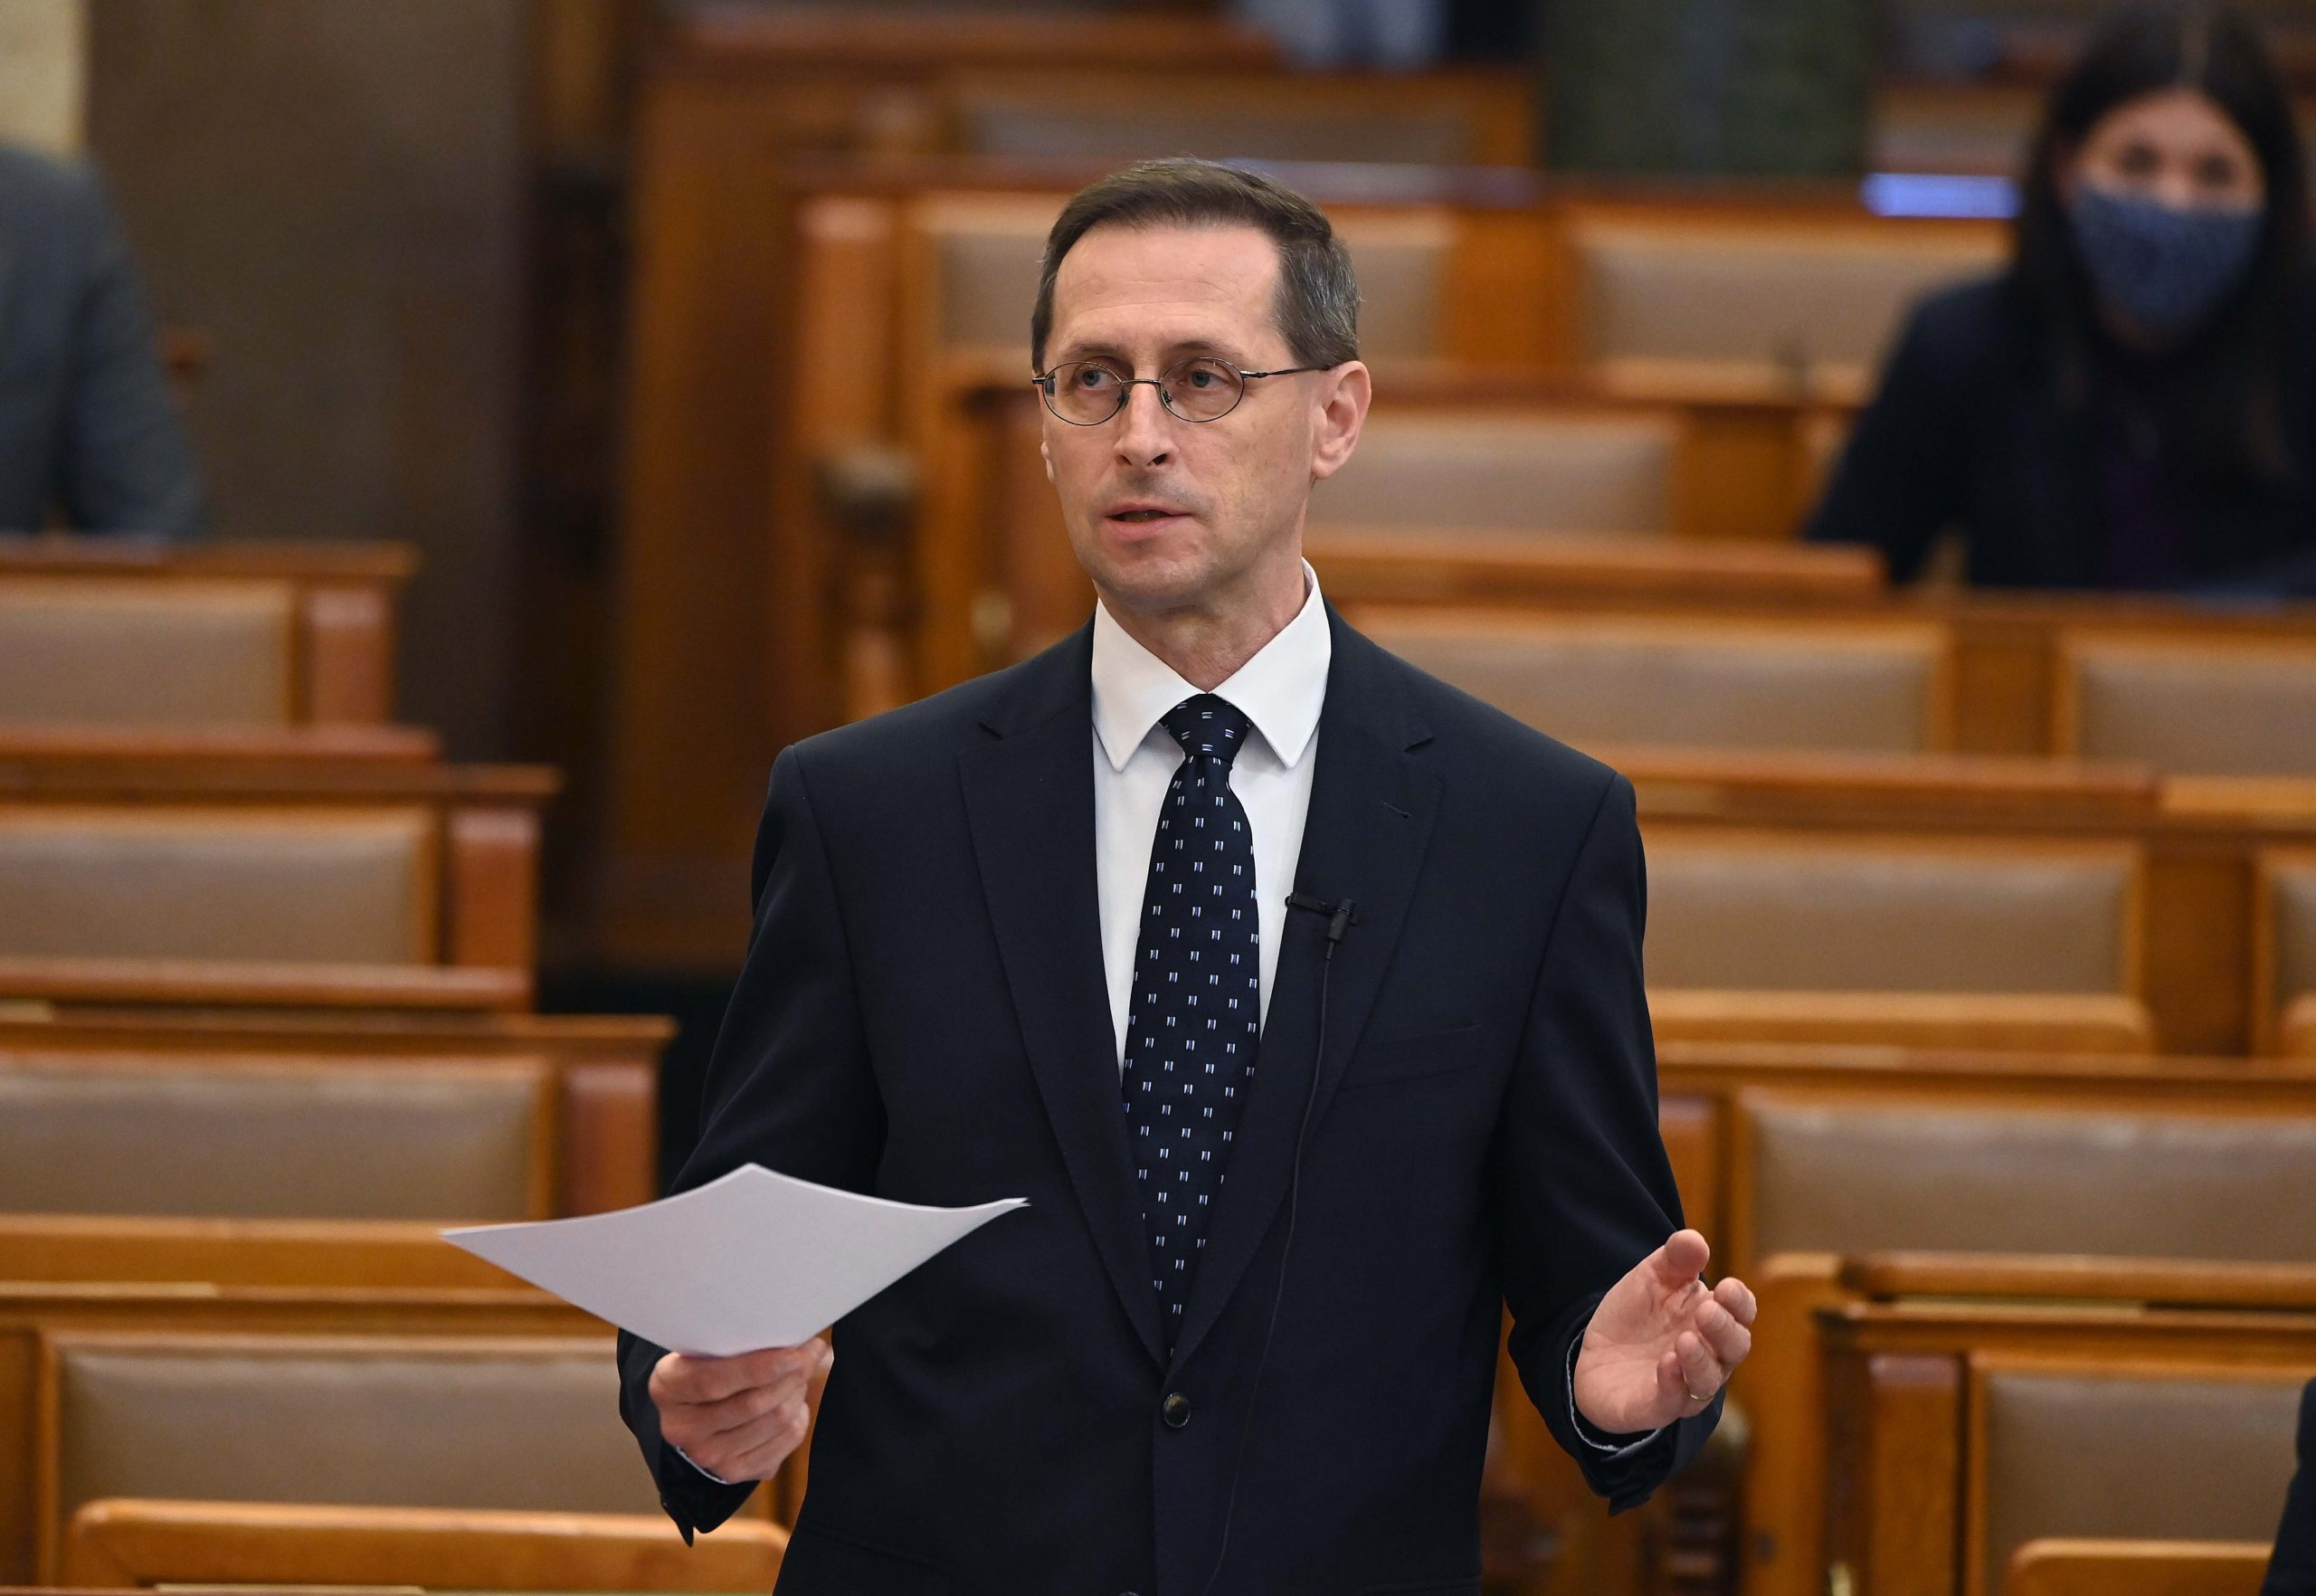 Finance Minister: Now Not the Time for Budget Cuts